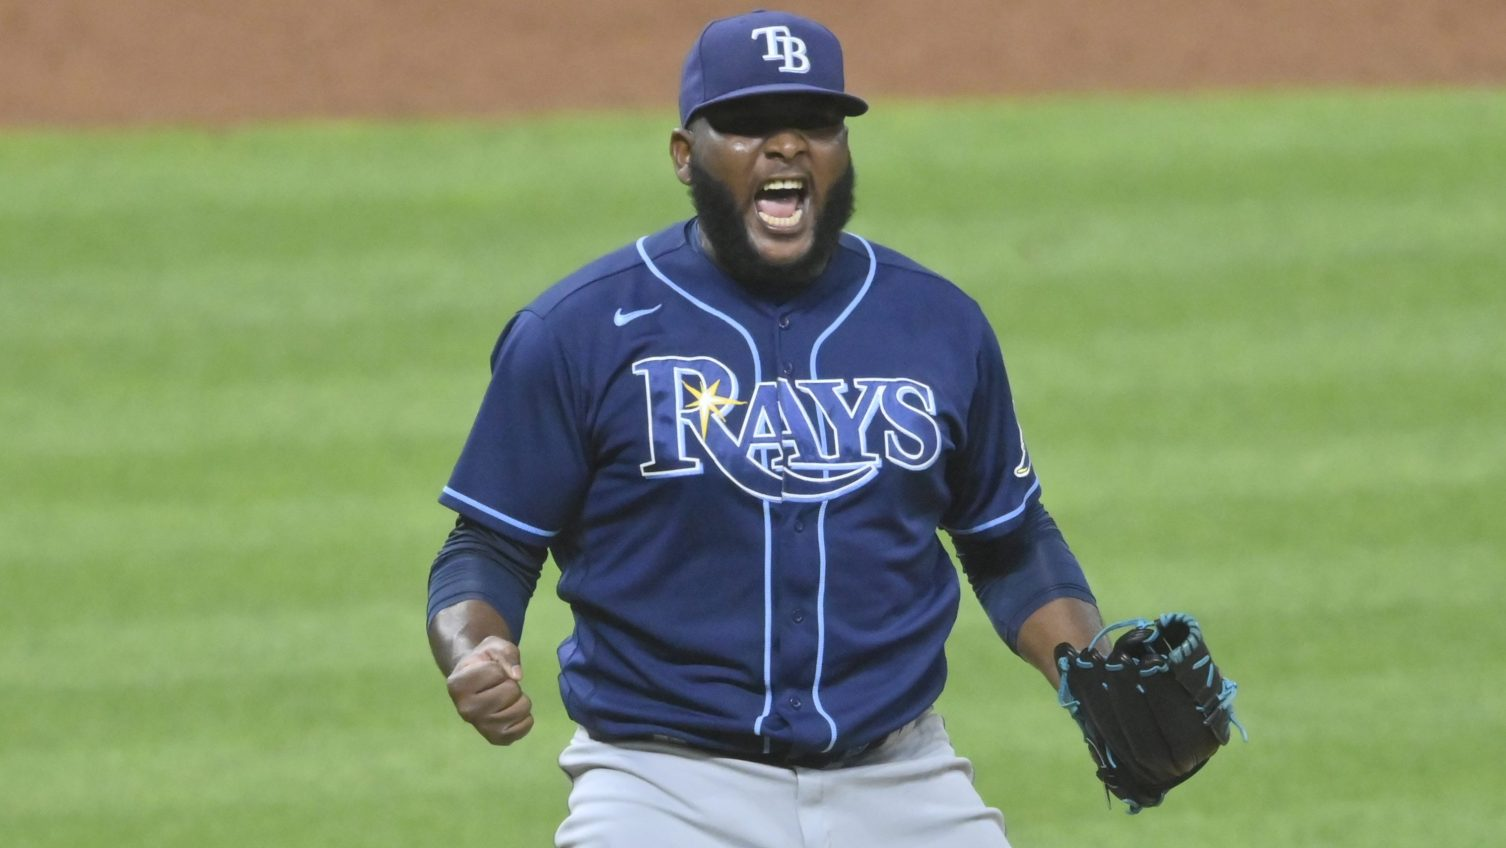 Mariners acquire RHP Diego Castillo from Rays for two players